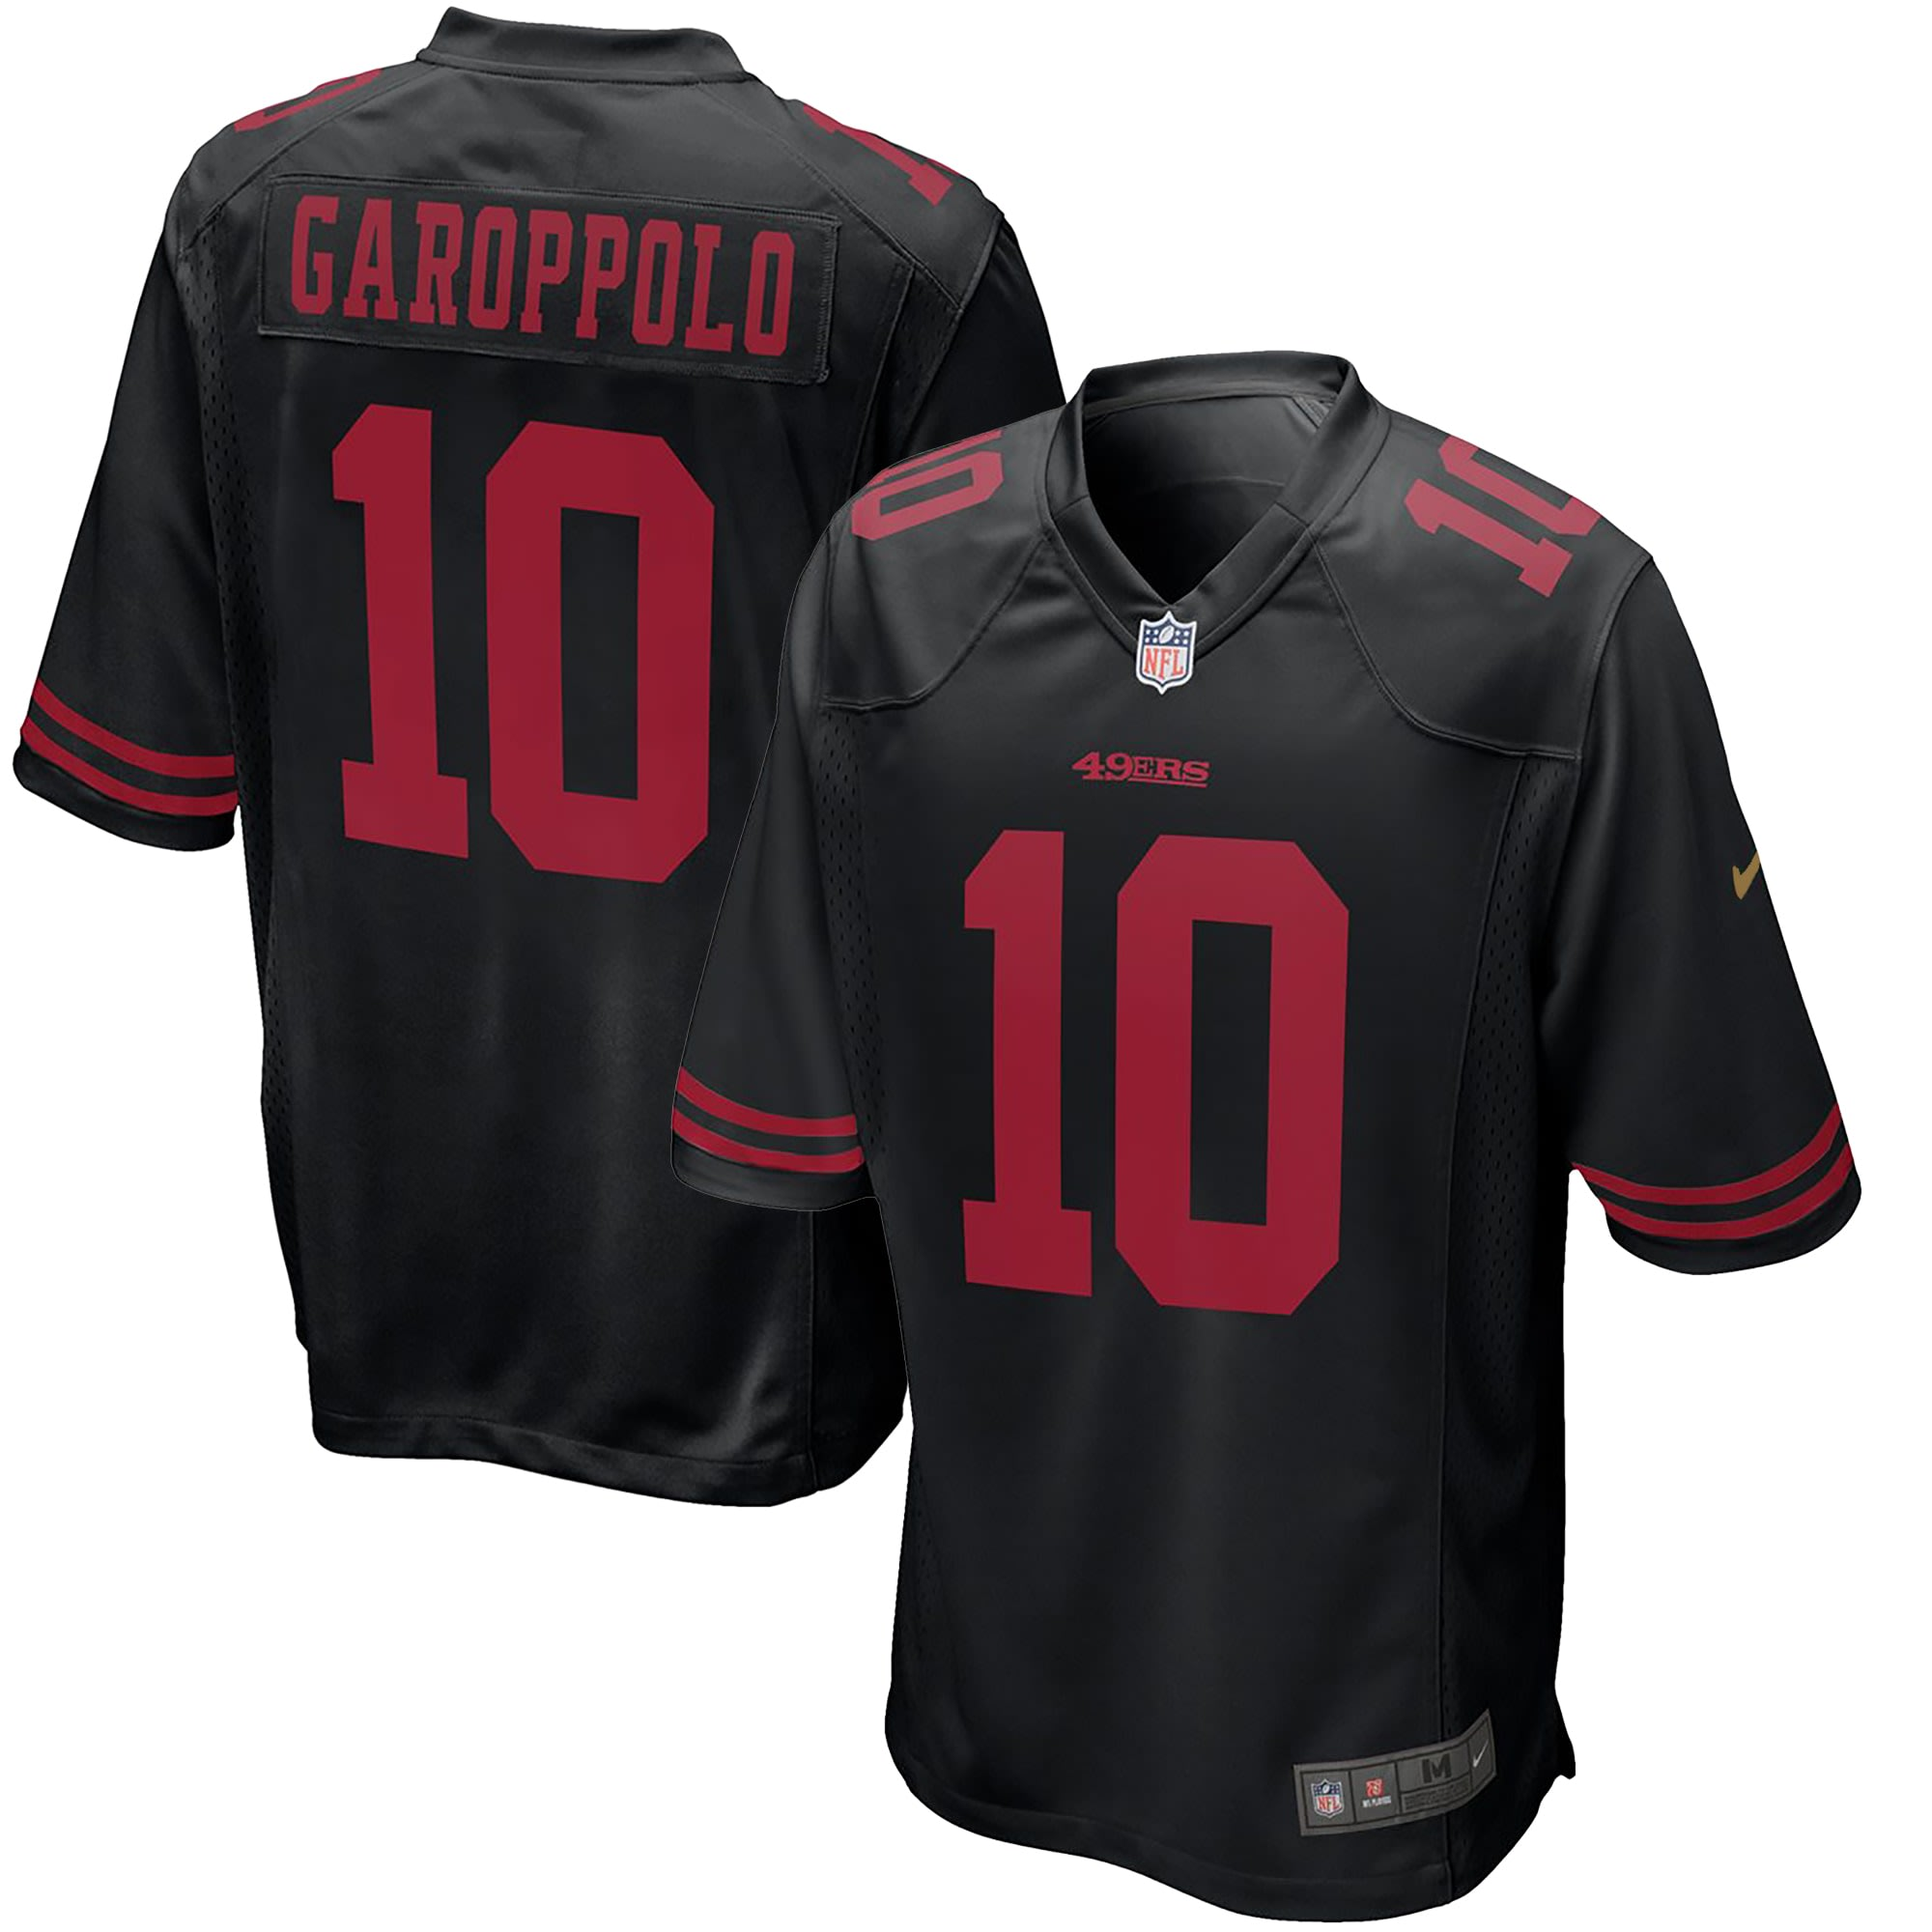 The 5 coolest San Francisco 49ers jerseys you can get right now